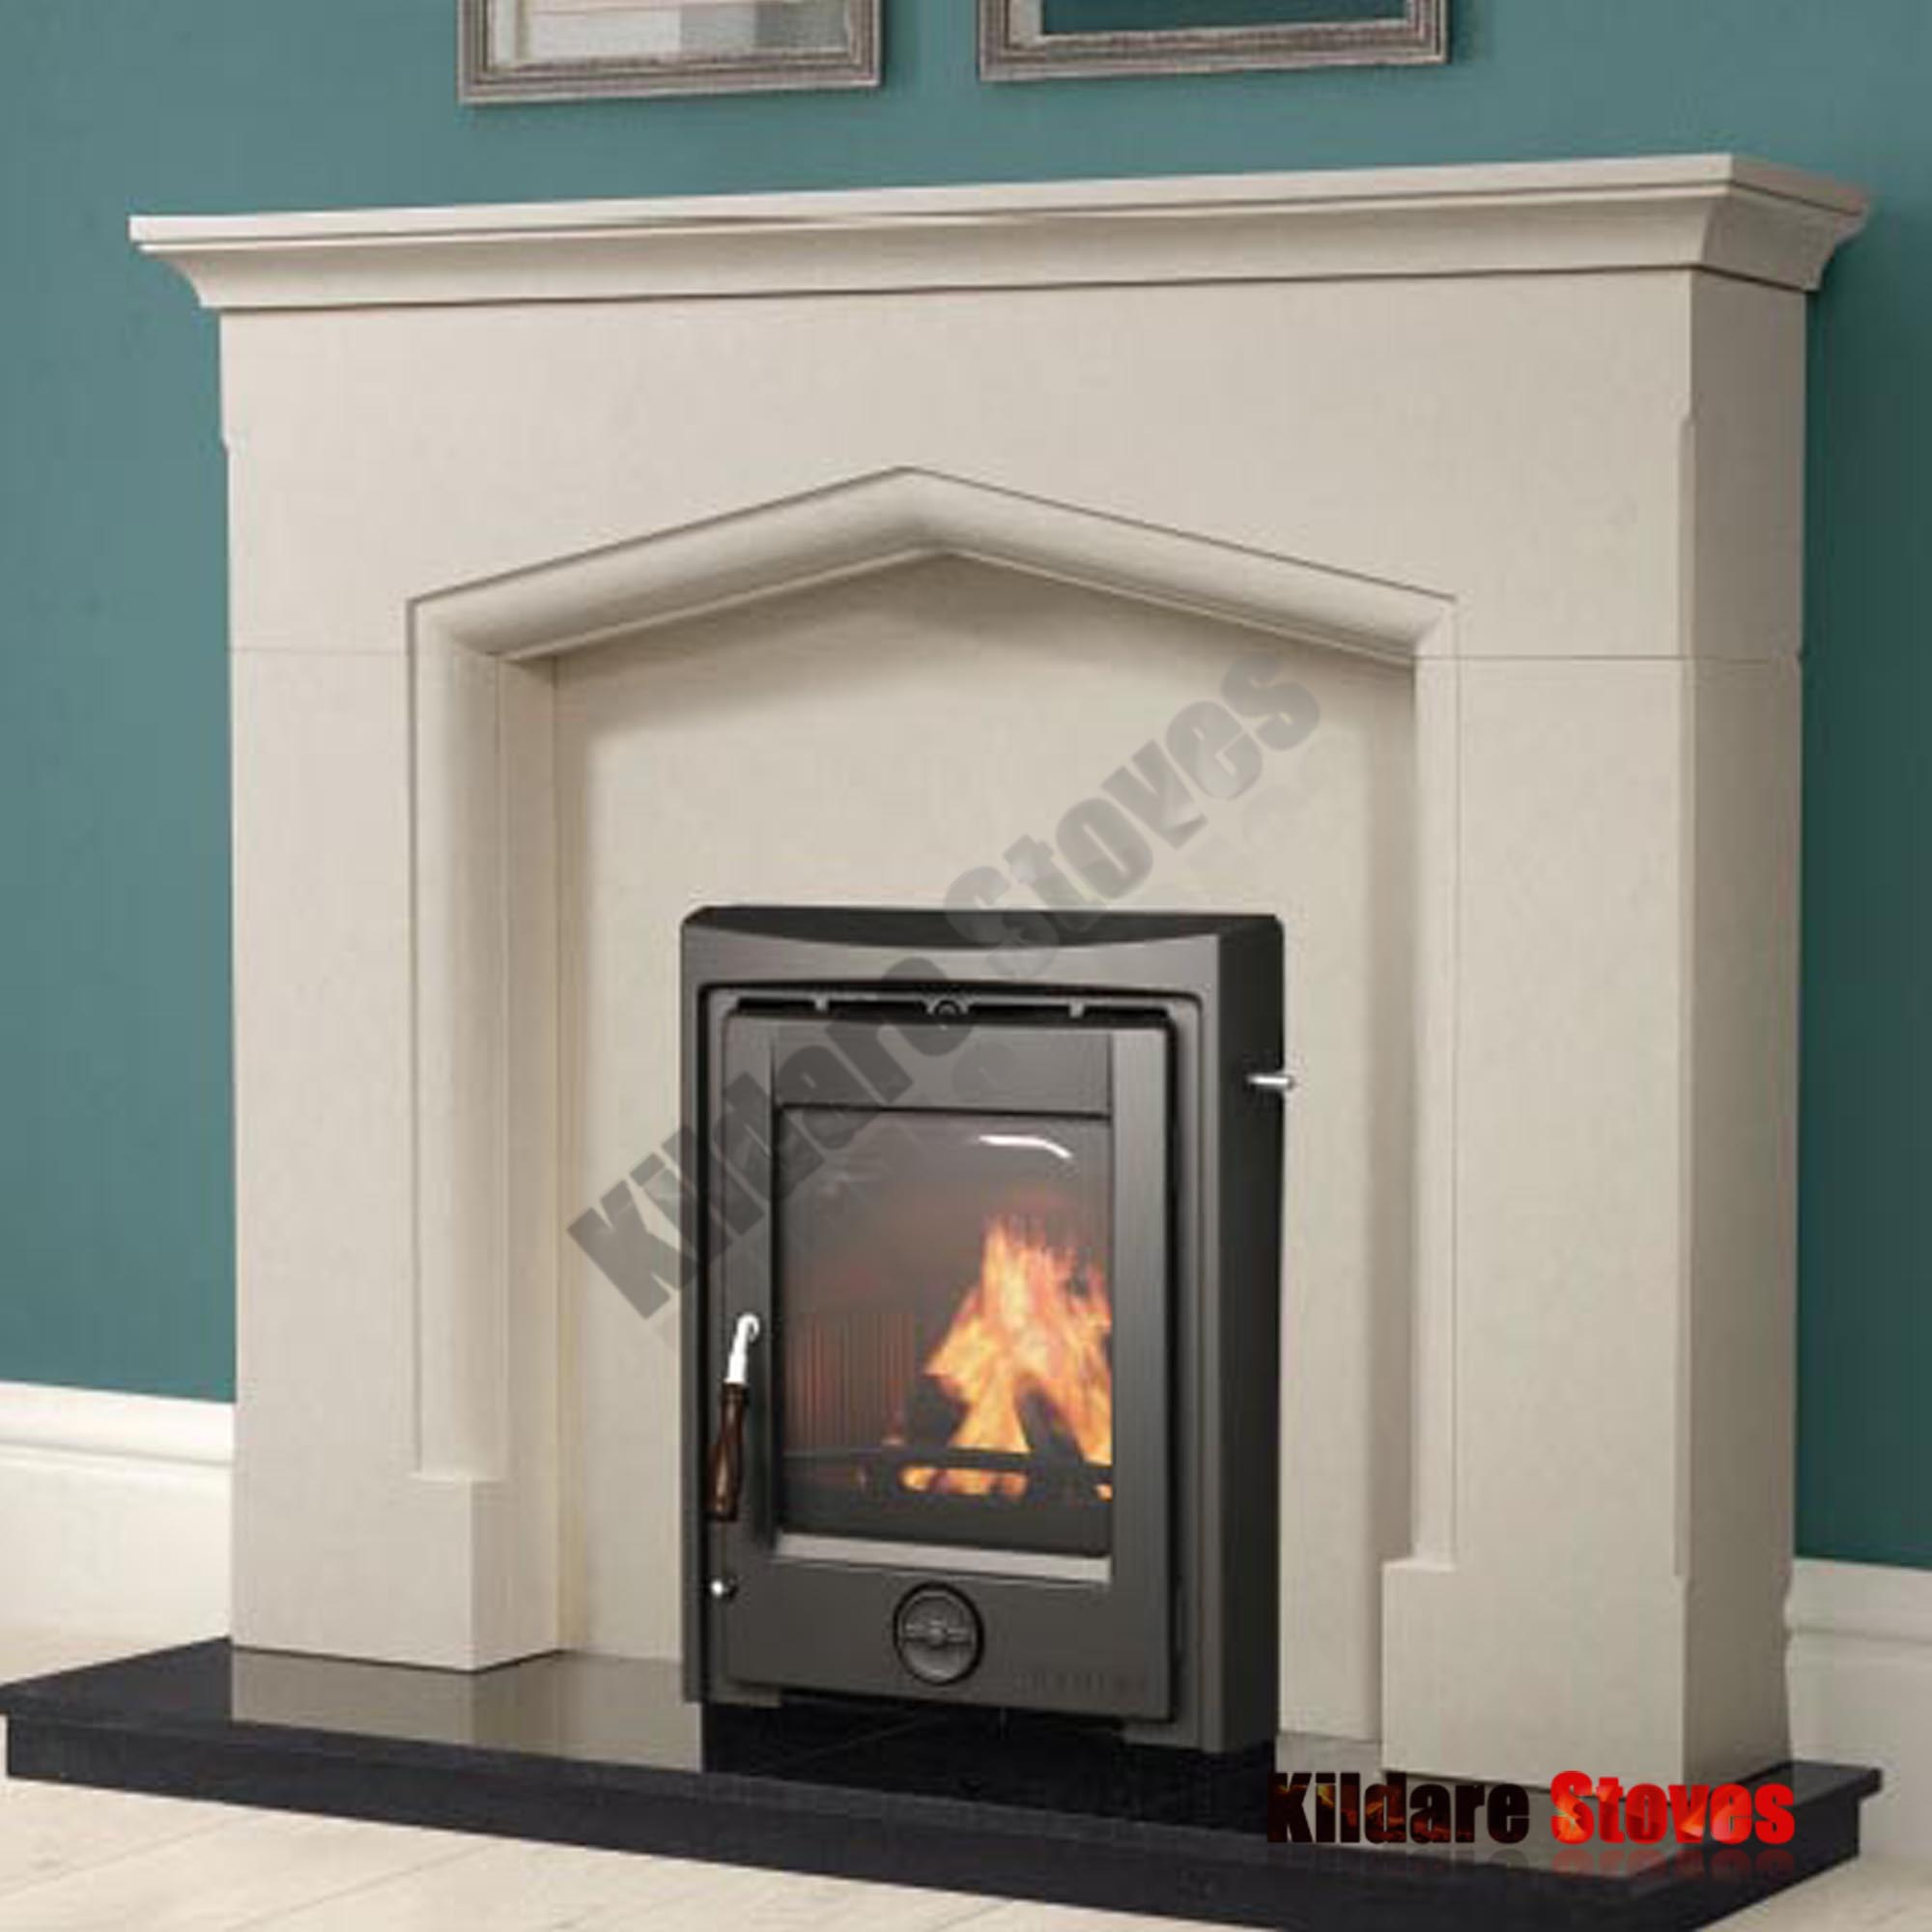 Henley Stoves Apollo 7kw Black Enamel Kildare Stoves